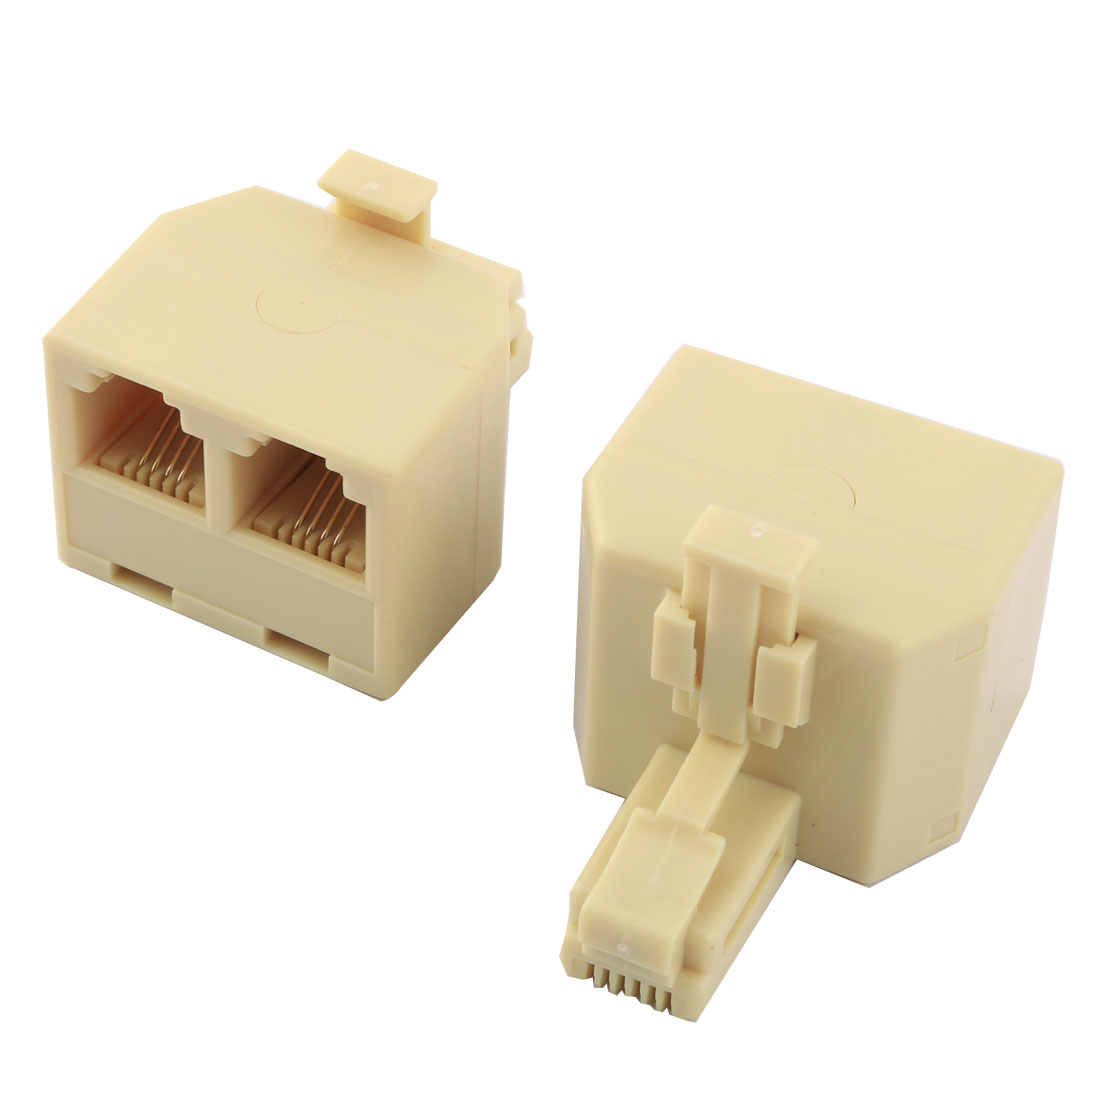 Home RJ11 6P4C Keystone 1 Male to 2 Female Telephone Wire Cable Connector Splitter Beige 2pcs